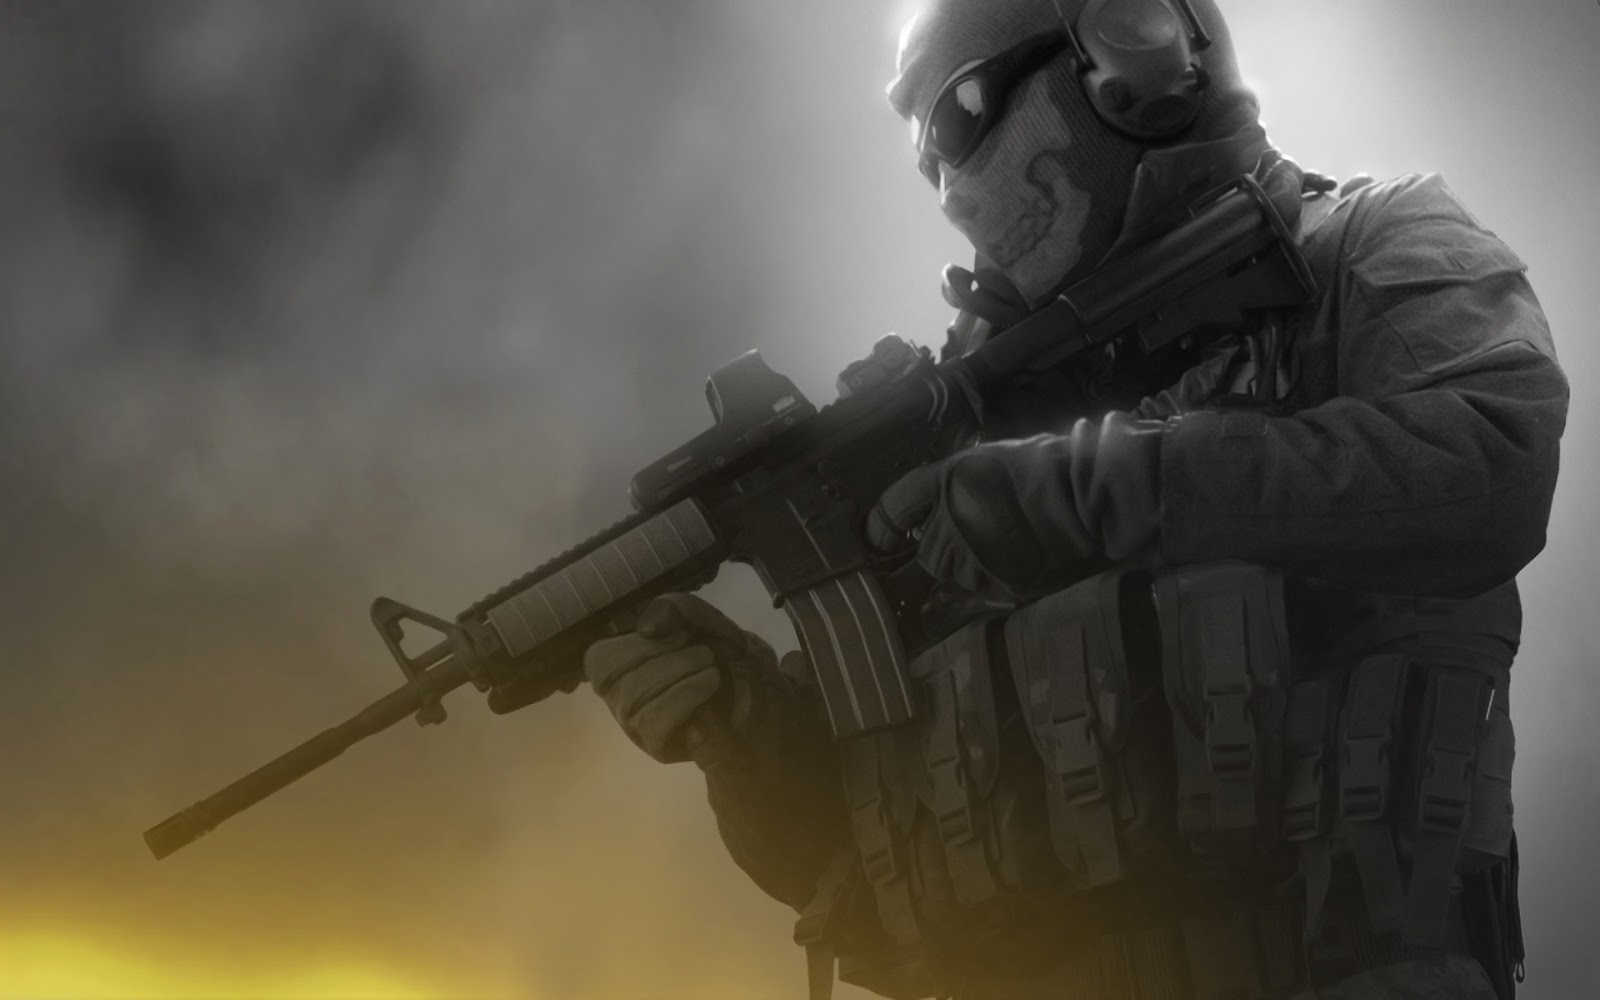 Skull Soldier Wallpaper HD - WallpaperSafari